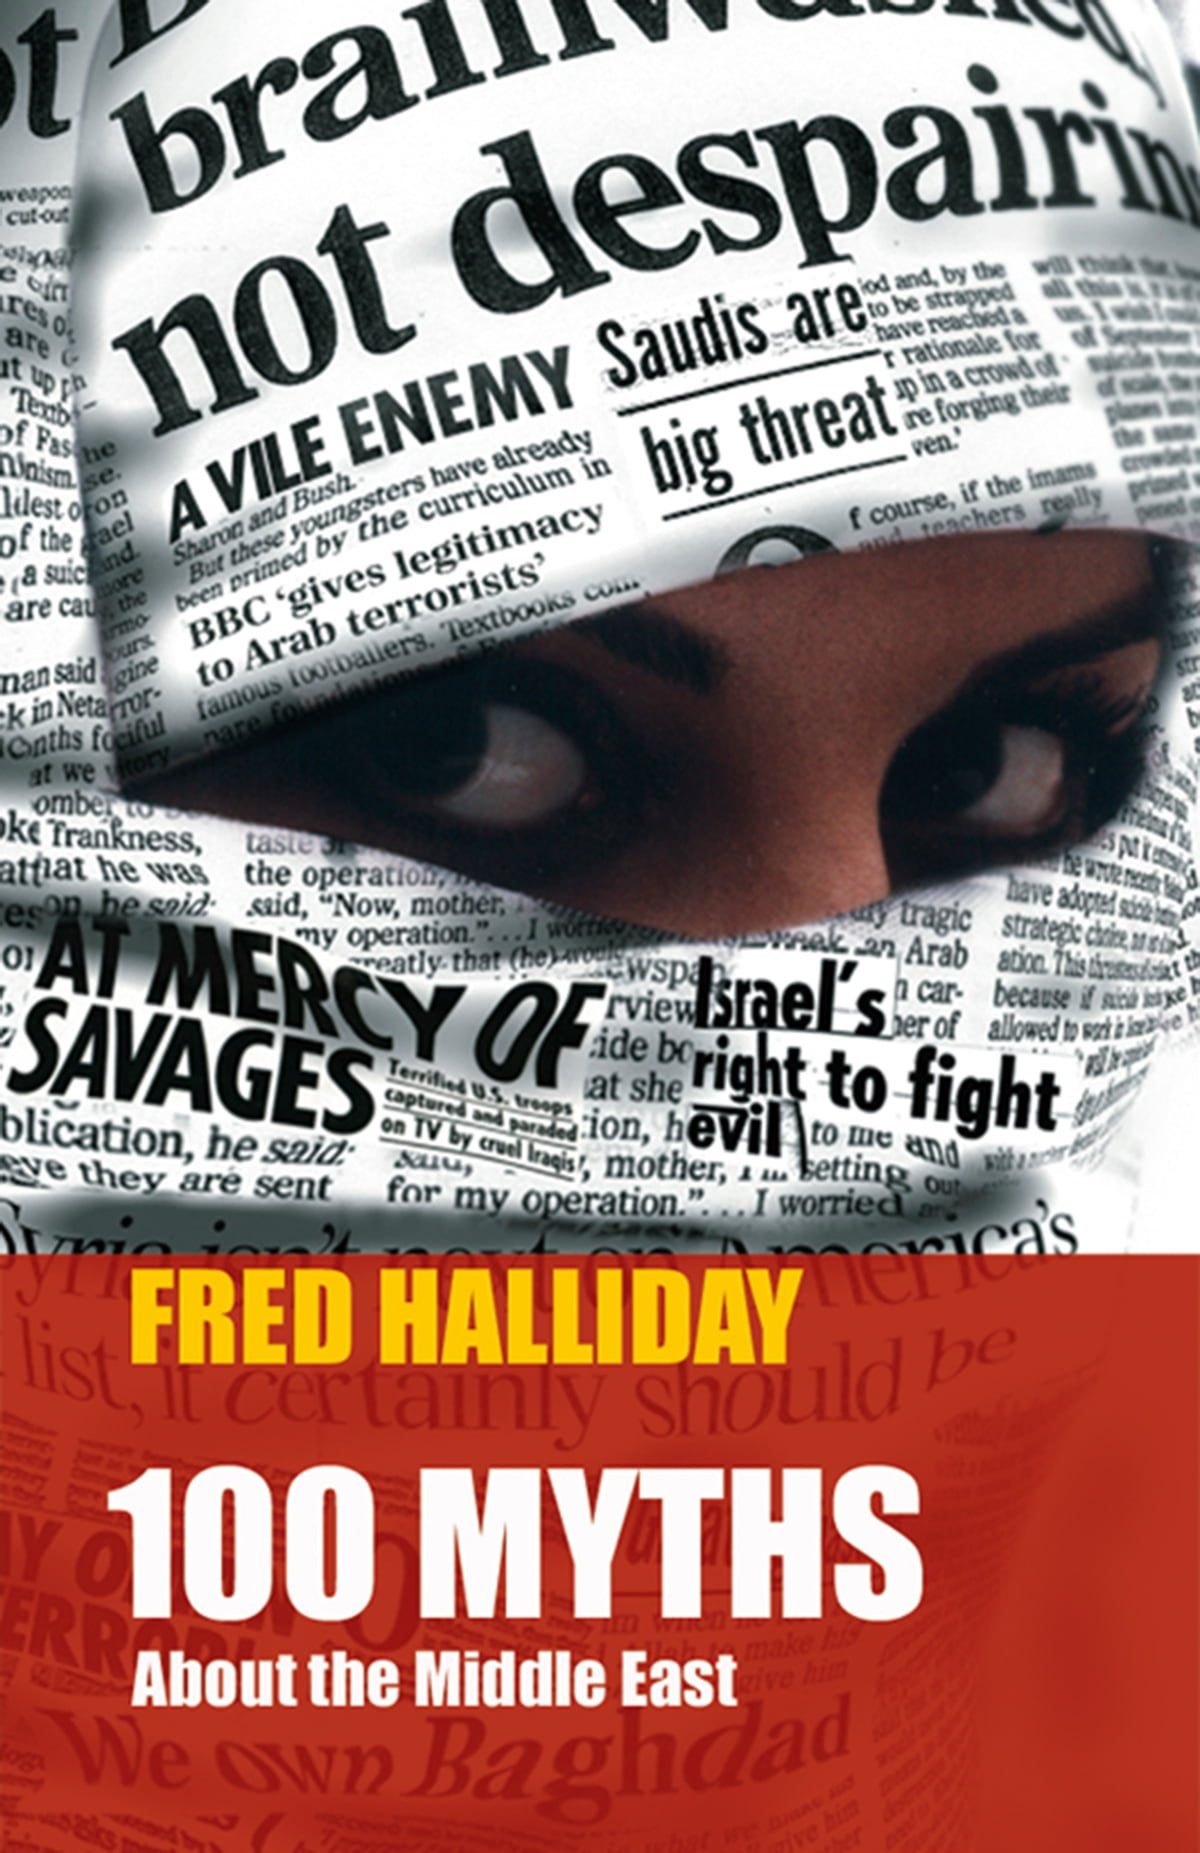 100 myths about the Middle East eBook by Fred Halliday - 9780863567094 |  Rakuten Kobo